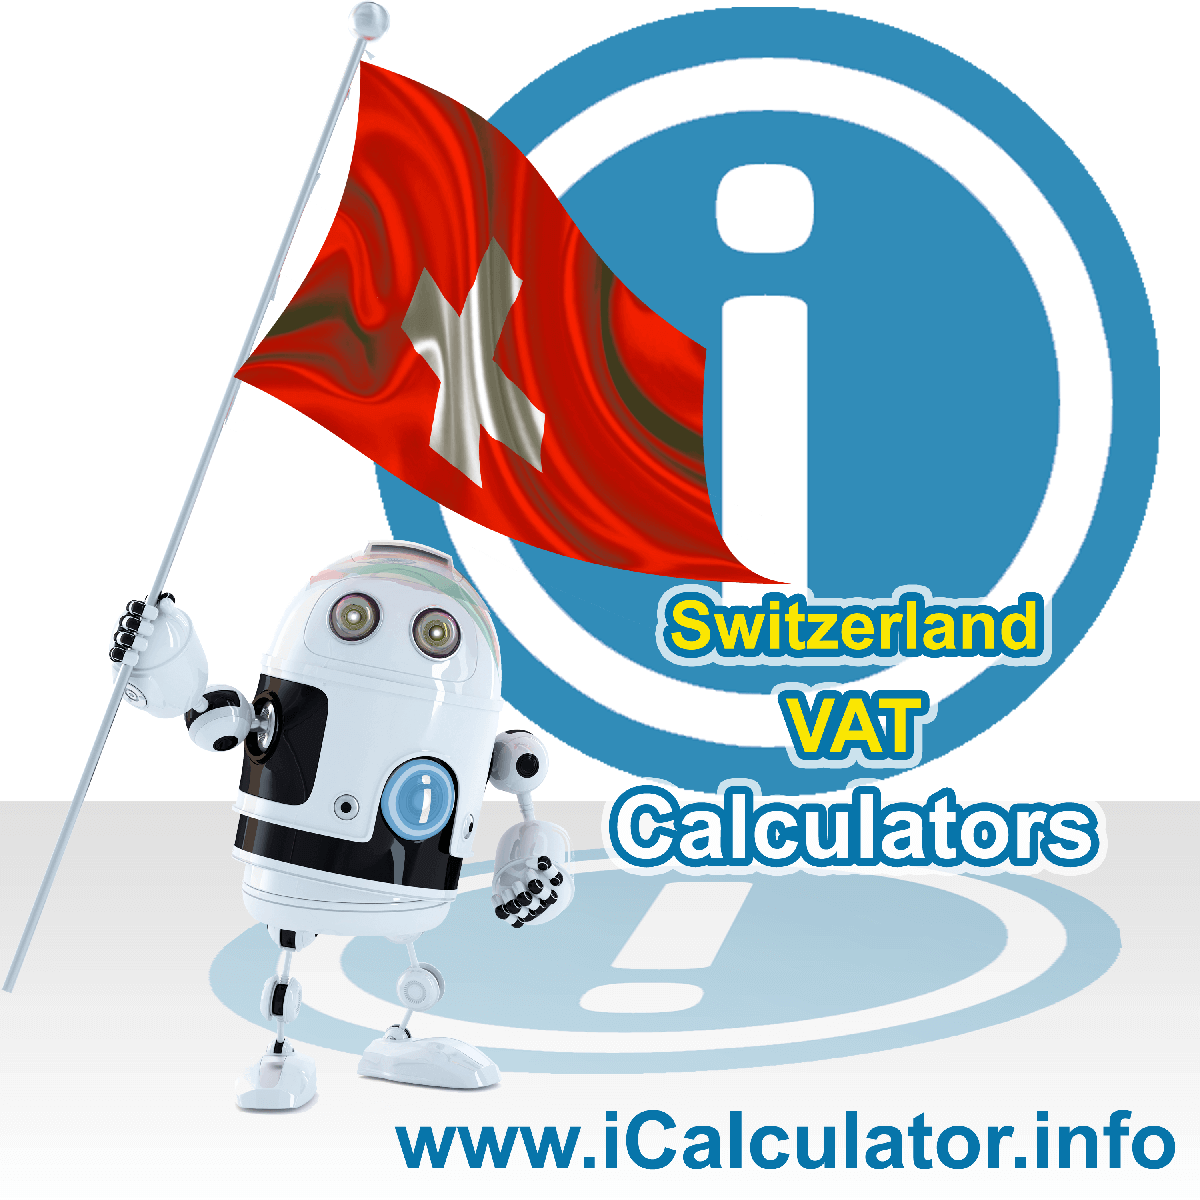 Switzerland VAT Calculator. This image shows the Switzerland flag and information relating to the VAT formula used for calculating Value Added Tax in Switzerland using the Switzerland VAT Calculator in 2020